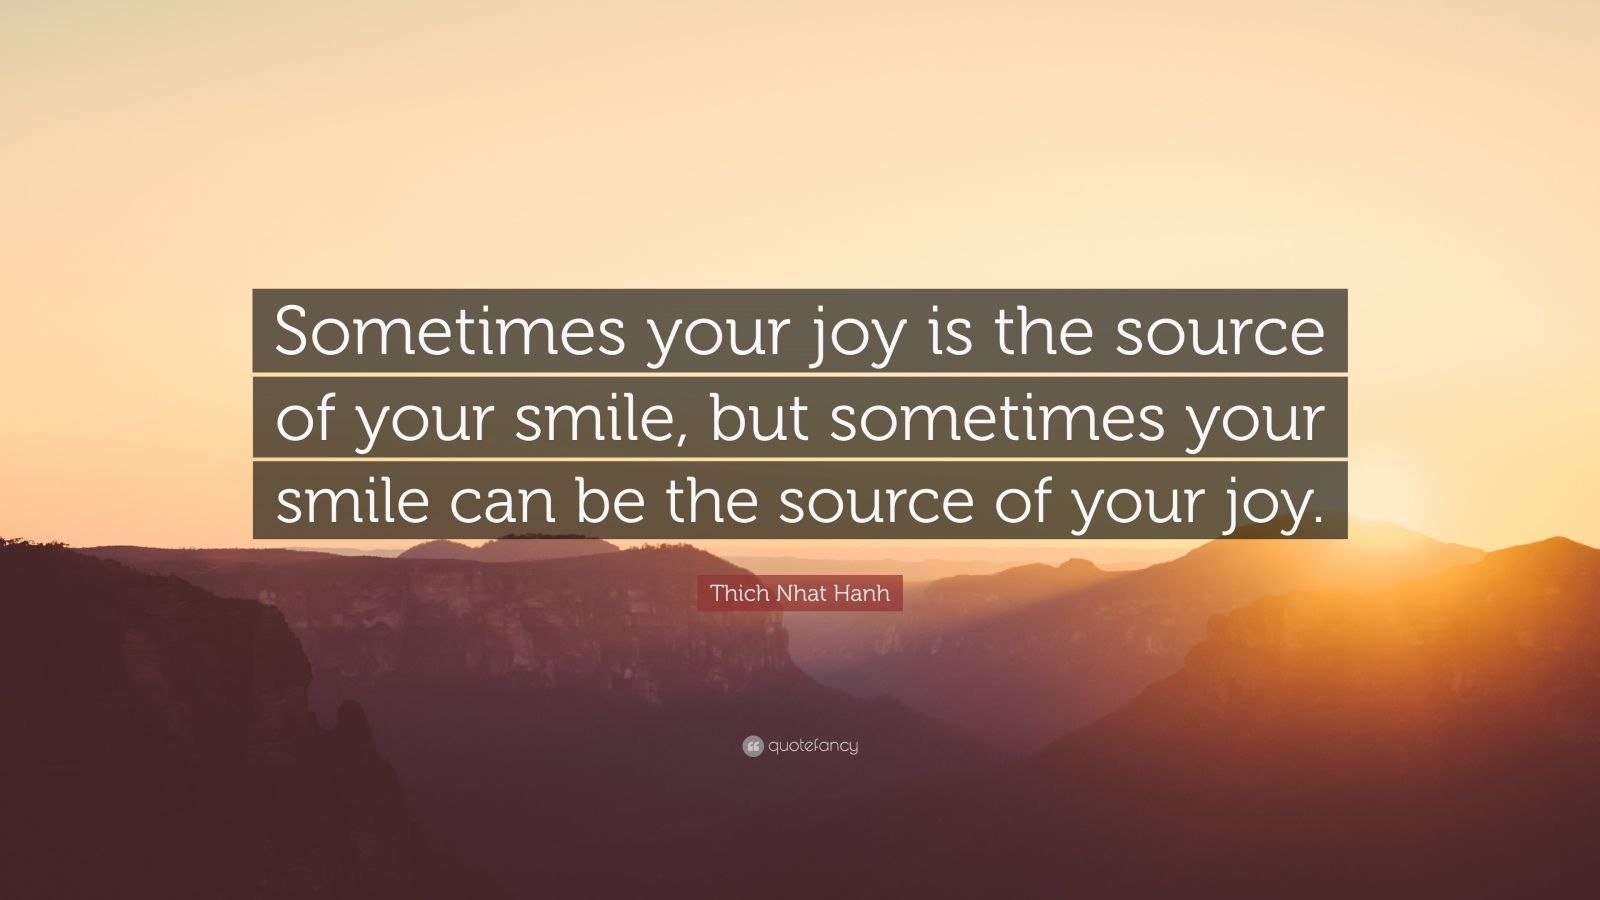 """Thich Nhat Hanh Quote: """"Sometimes your joy is the source of your smile, but sometimes your smile can be the source of your joy."""""""